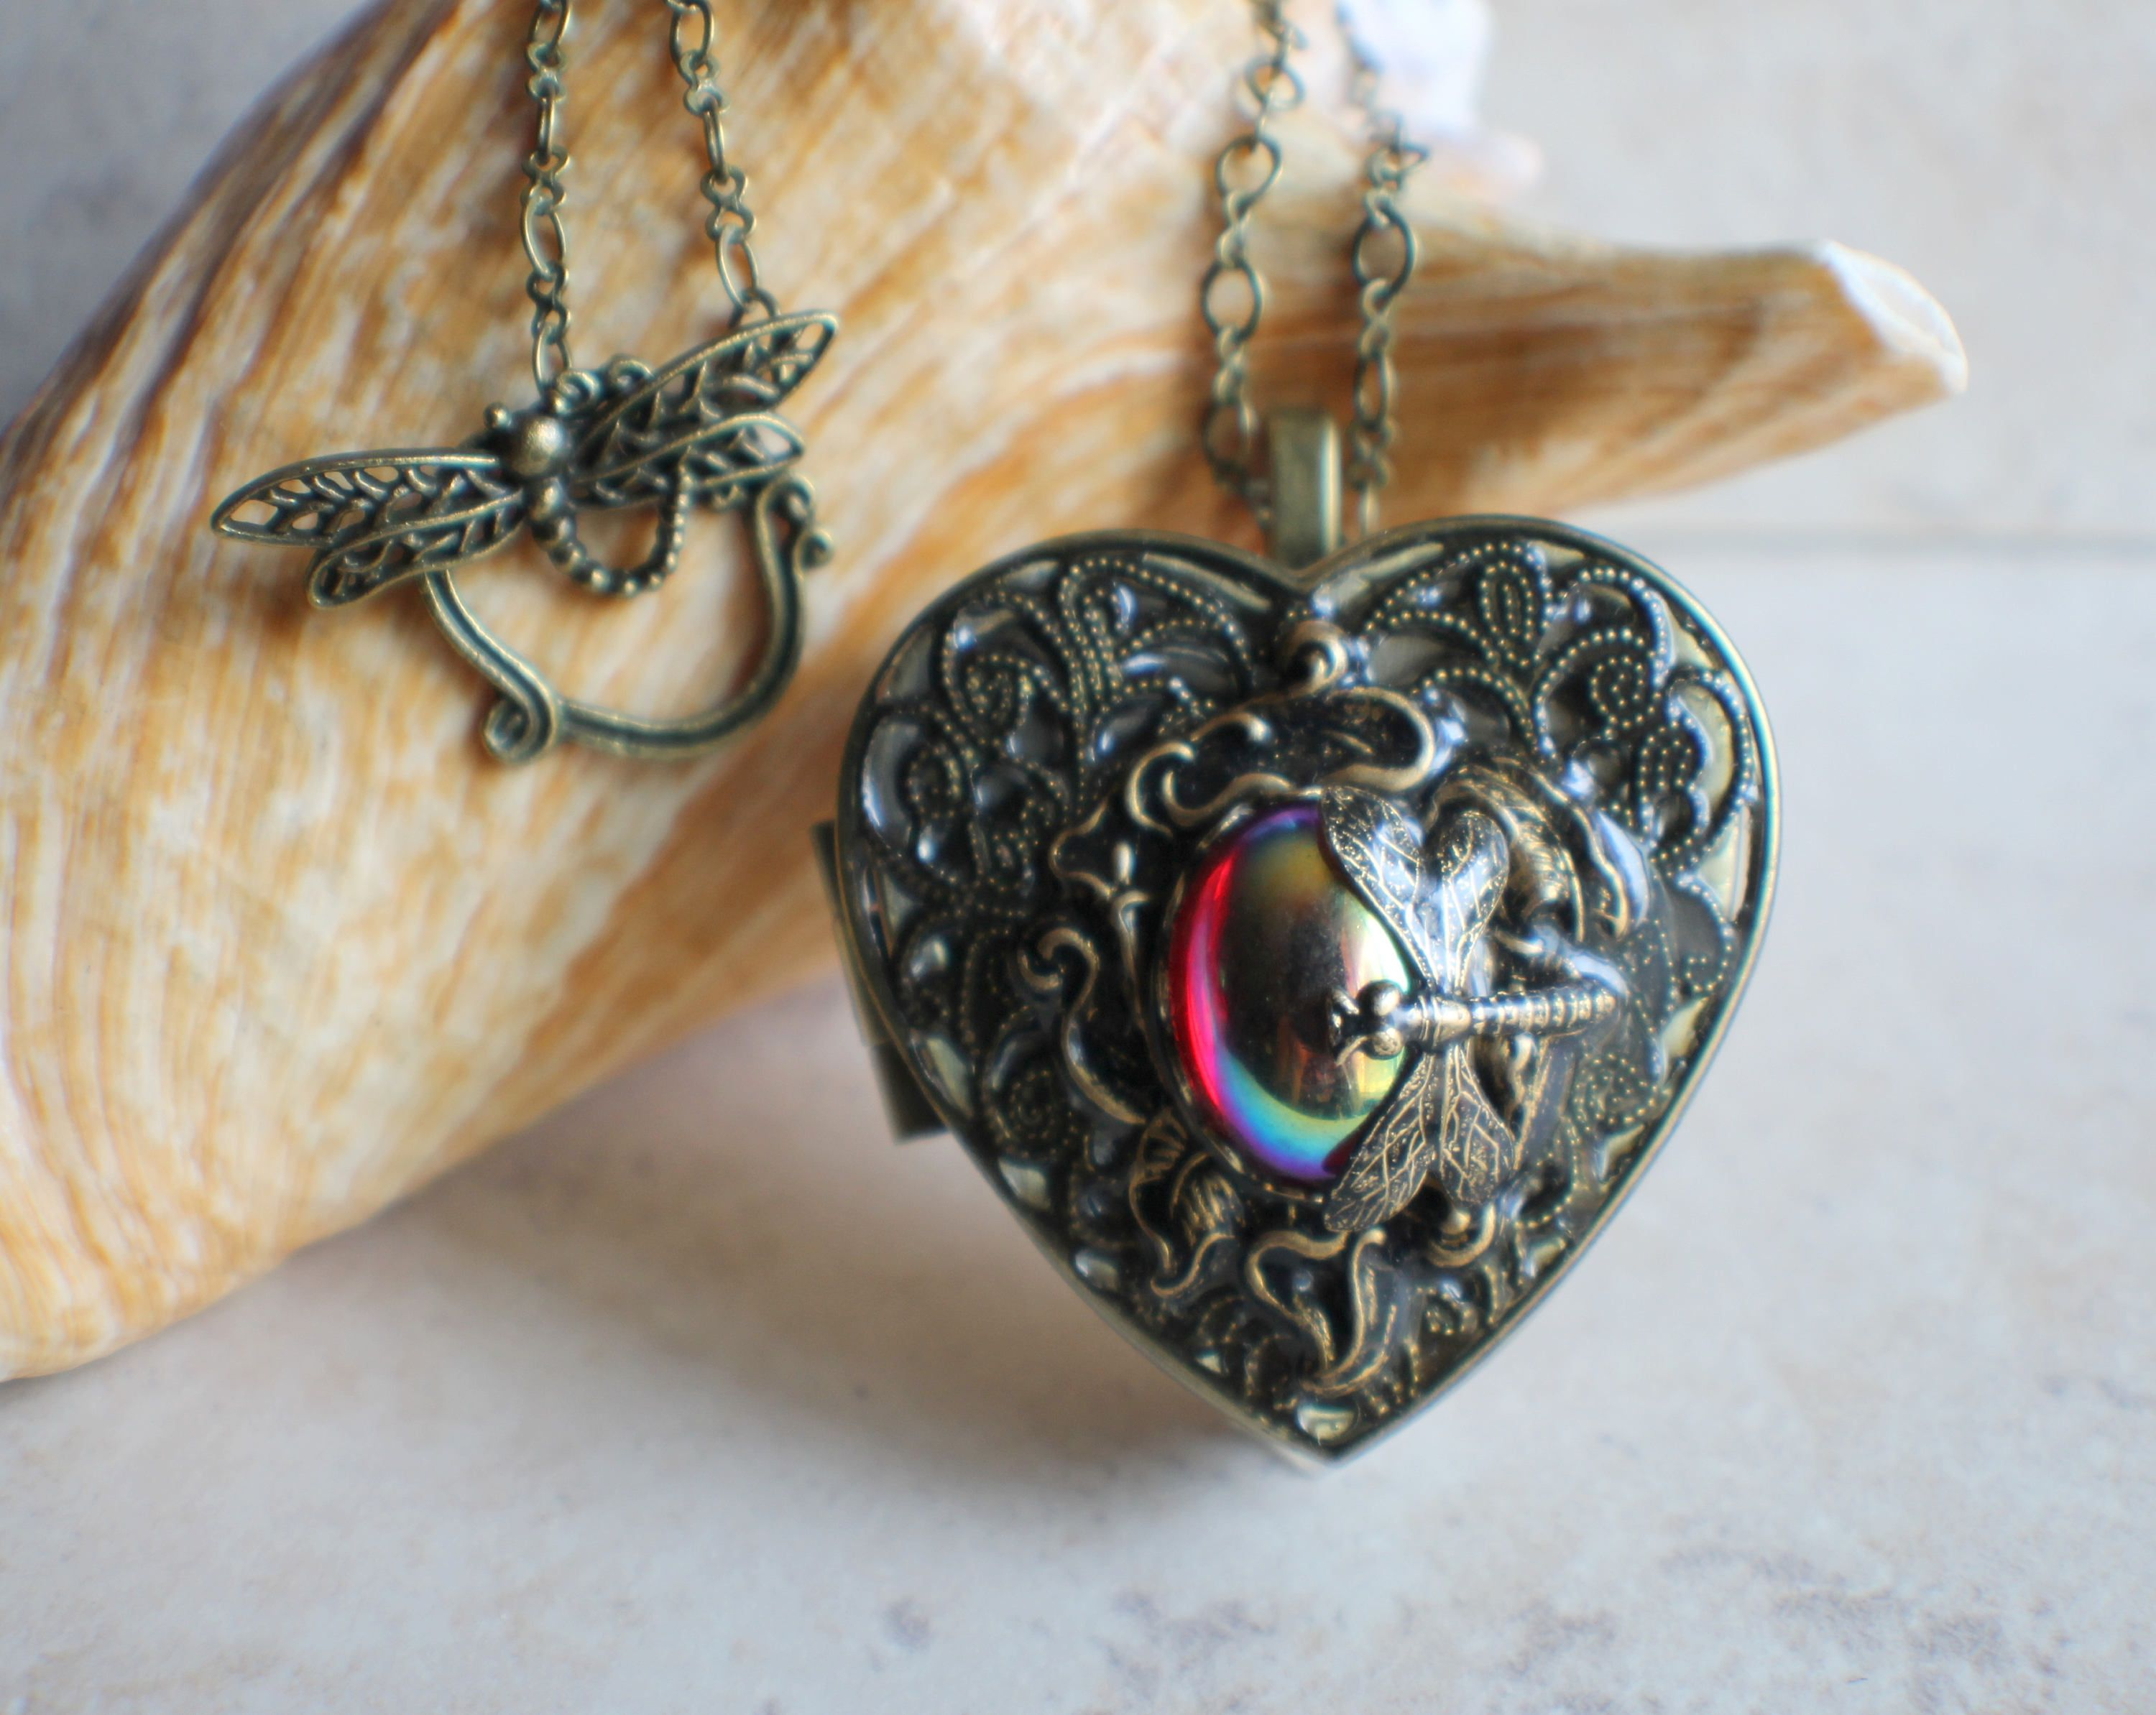 Dragonfly music box locket heart music box pendant music box dragonfly music box locket heart music box pendant music box jewelry musical photo aloadofball Image collections